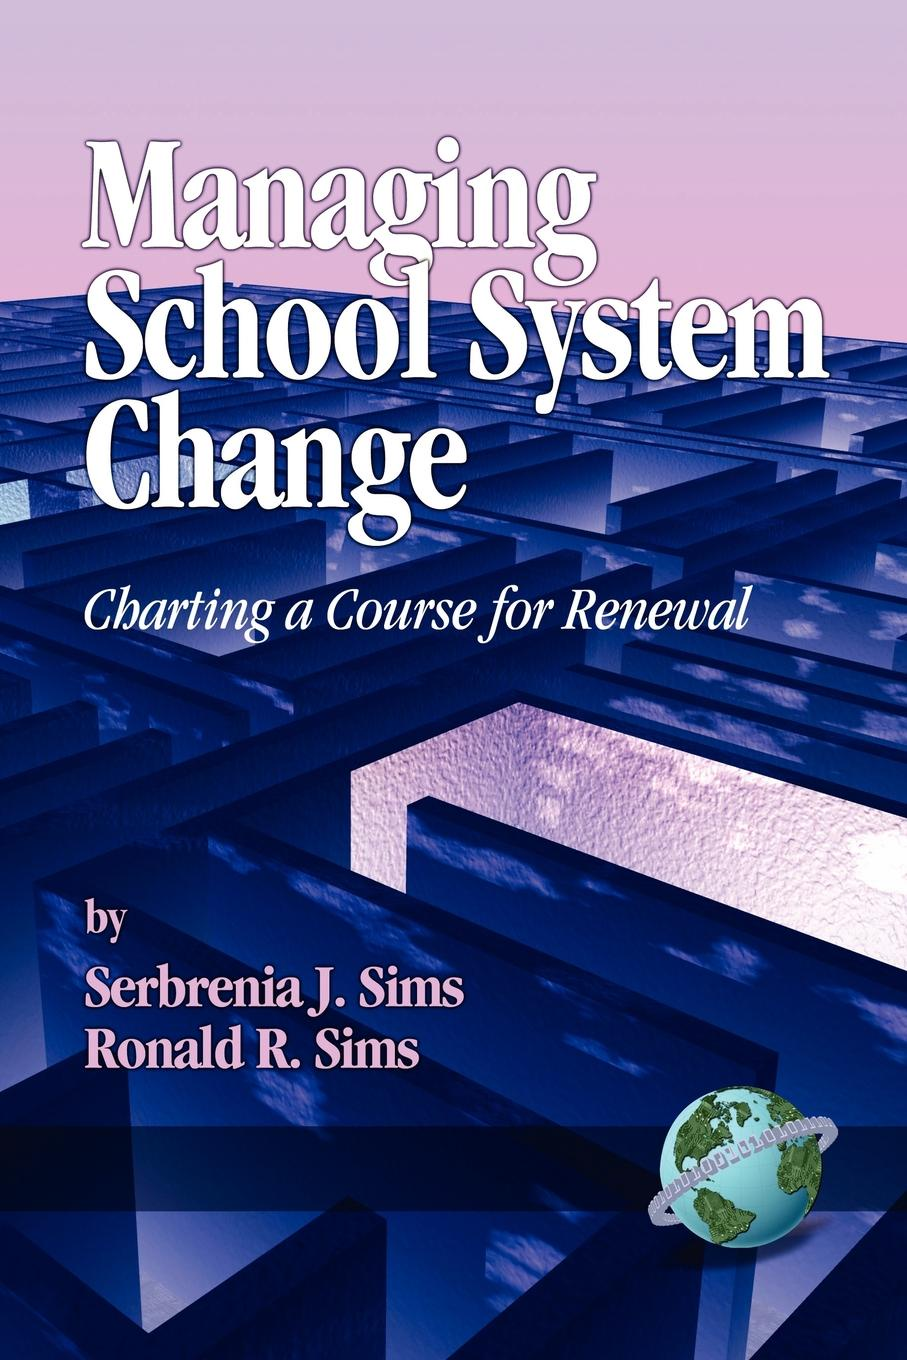 Serbrenia J. Sims Managing School System Change. Charting a Course for Renewal (PB)